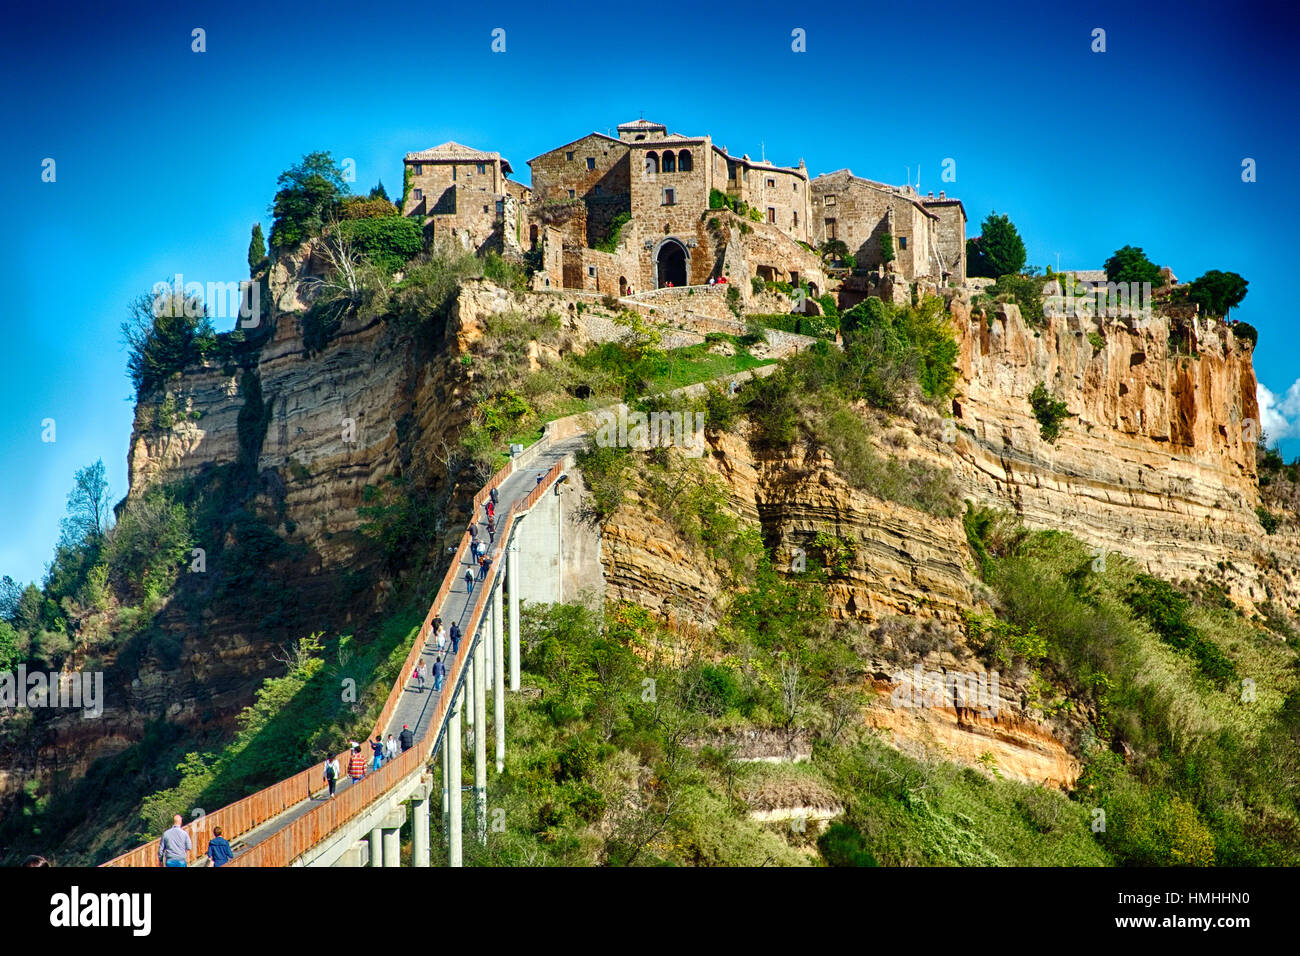 Low Angle View of a n Ancient Hilltop Town, Civita di Bagnoregio, Umbria, Italy - Stock Image